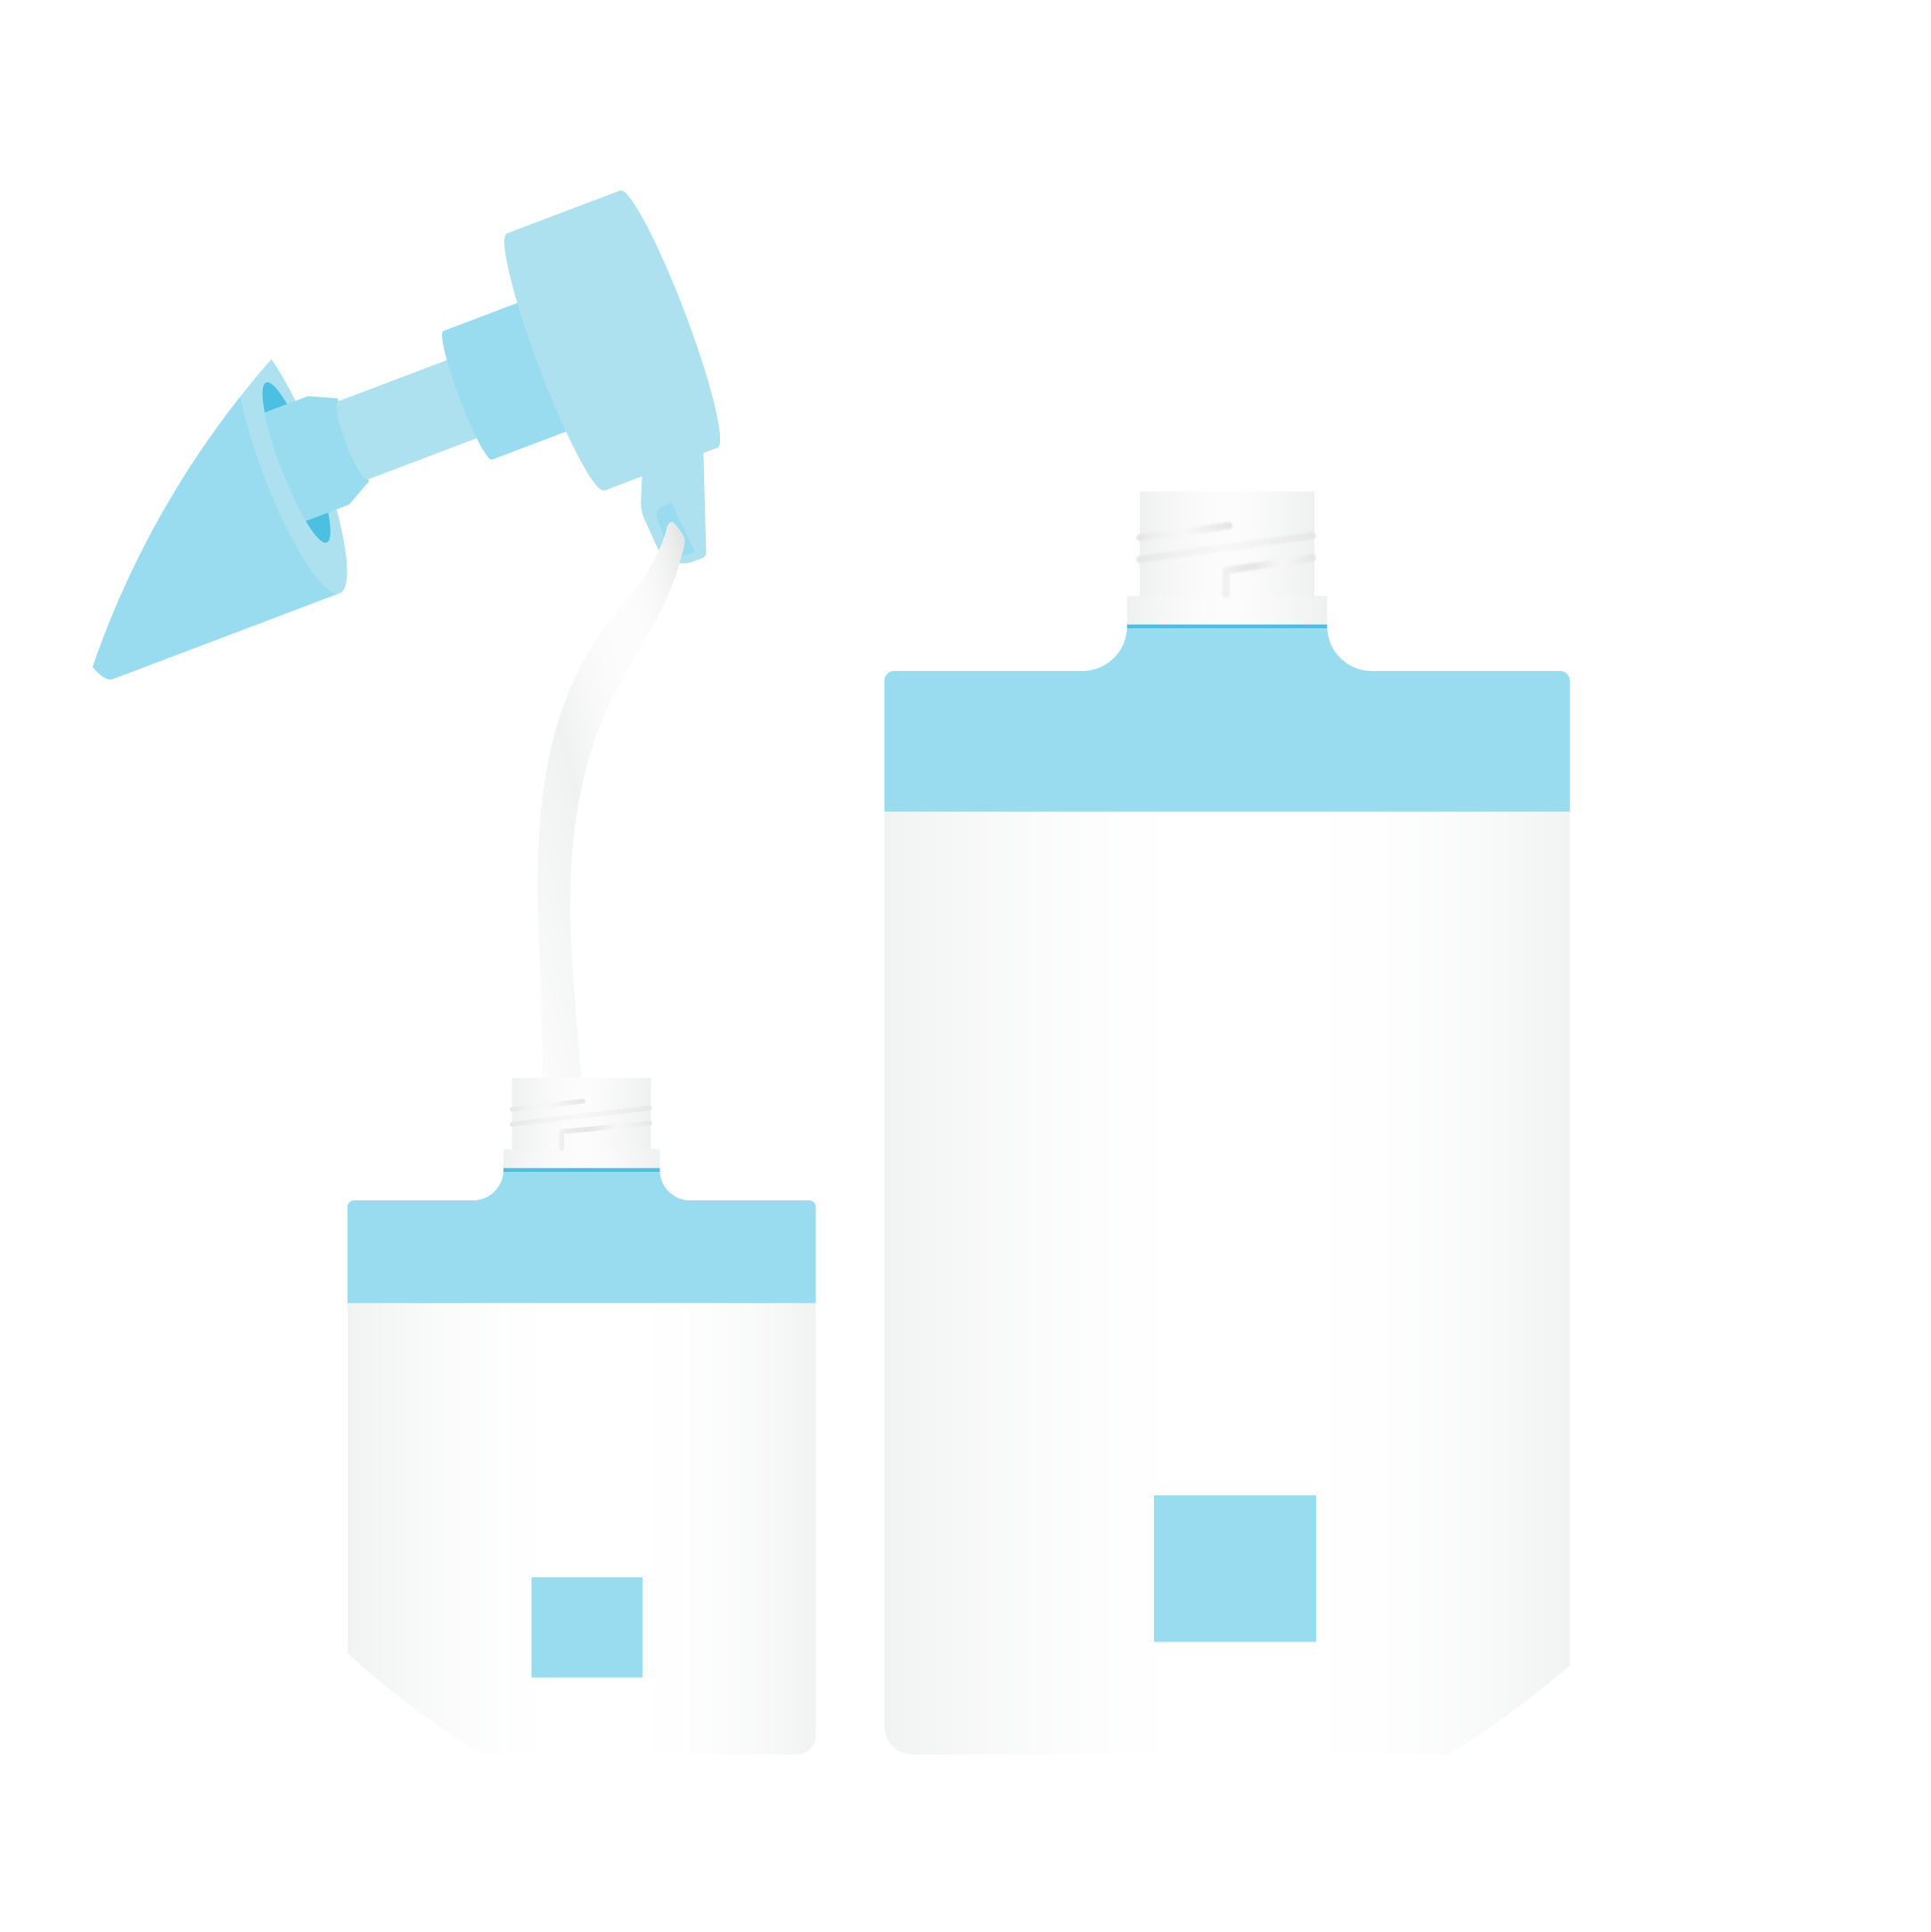 illustration of two bottles being refilled